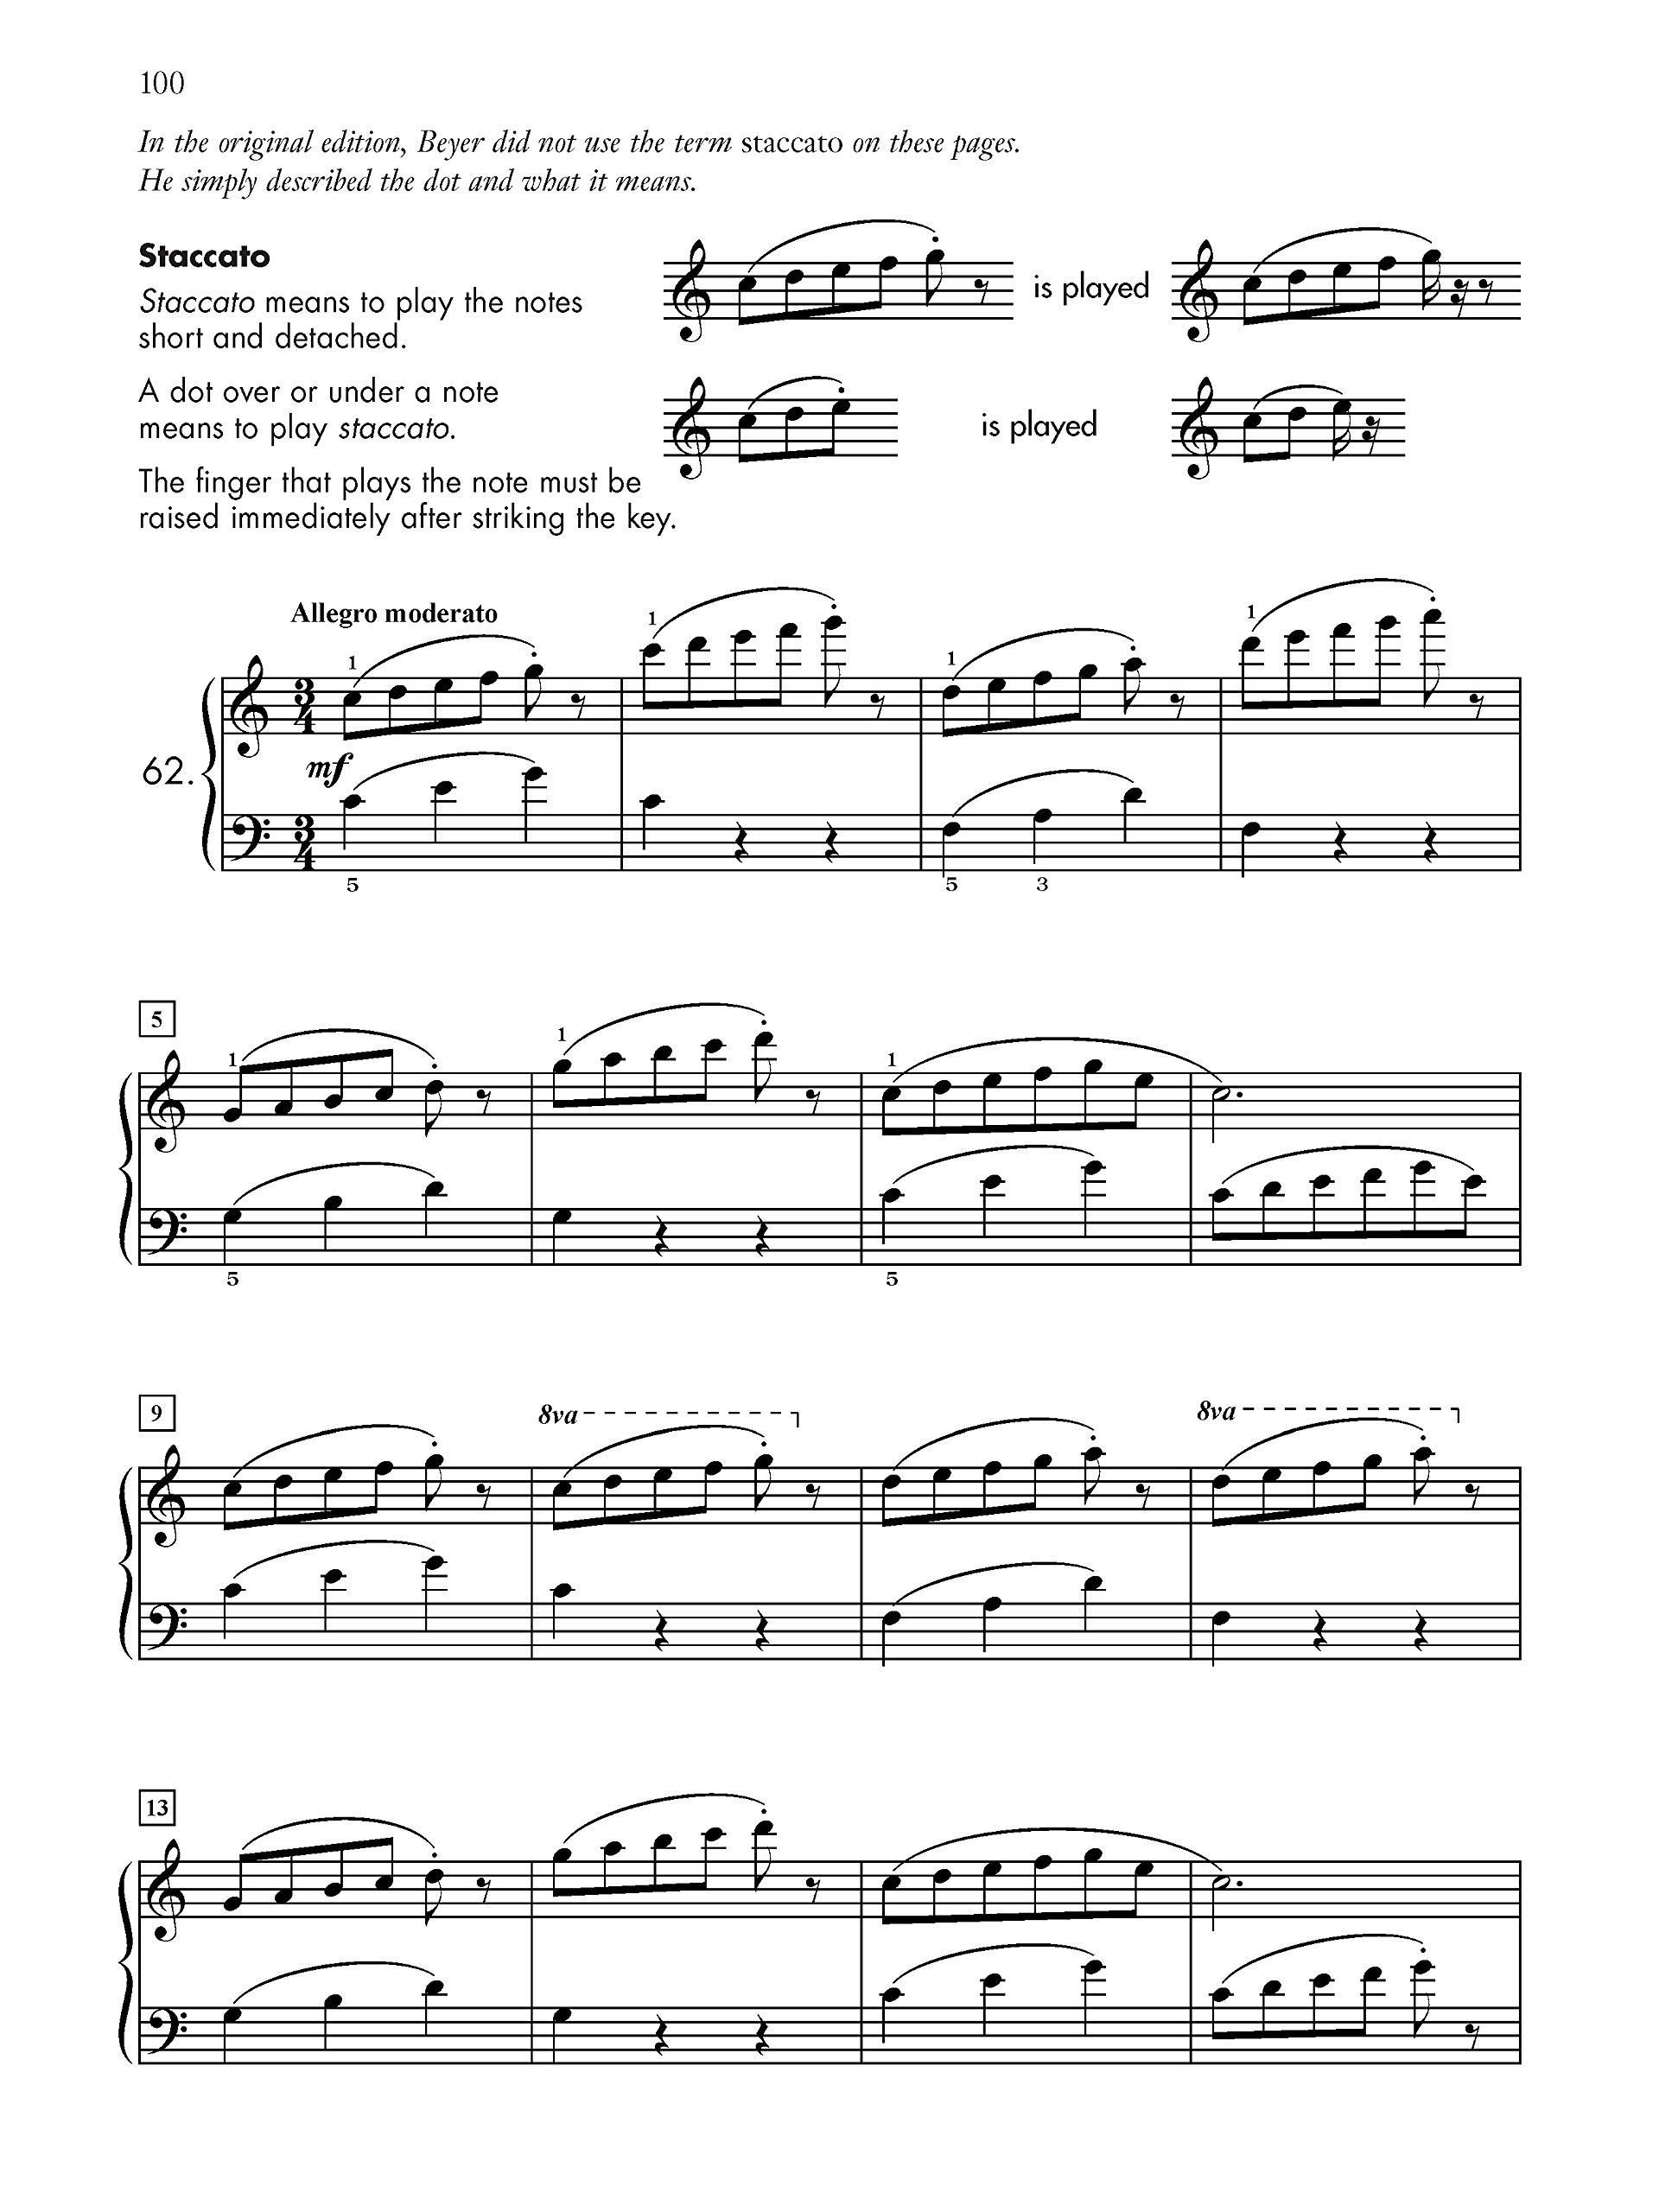 Elementary Method for the Piano, Op. 101 Alfred Masterwork Edition: Amazon.es: Beyer, Ferdinand, Kowalchyk, Gayle, Lancaster, E. L.: Libros en idiomas extranjeros